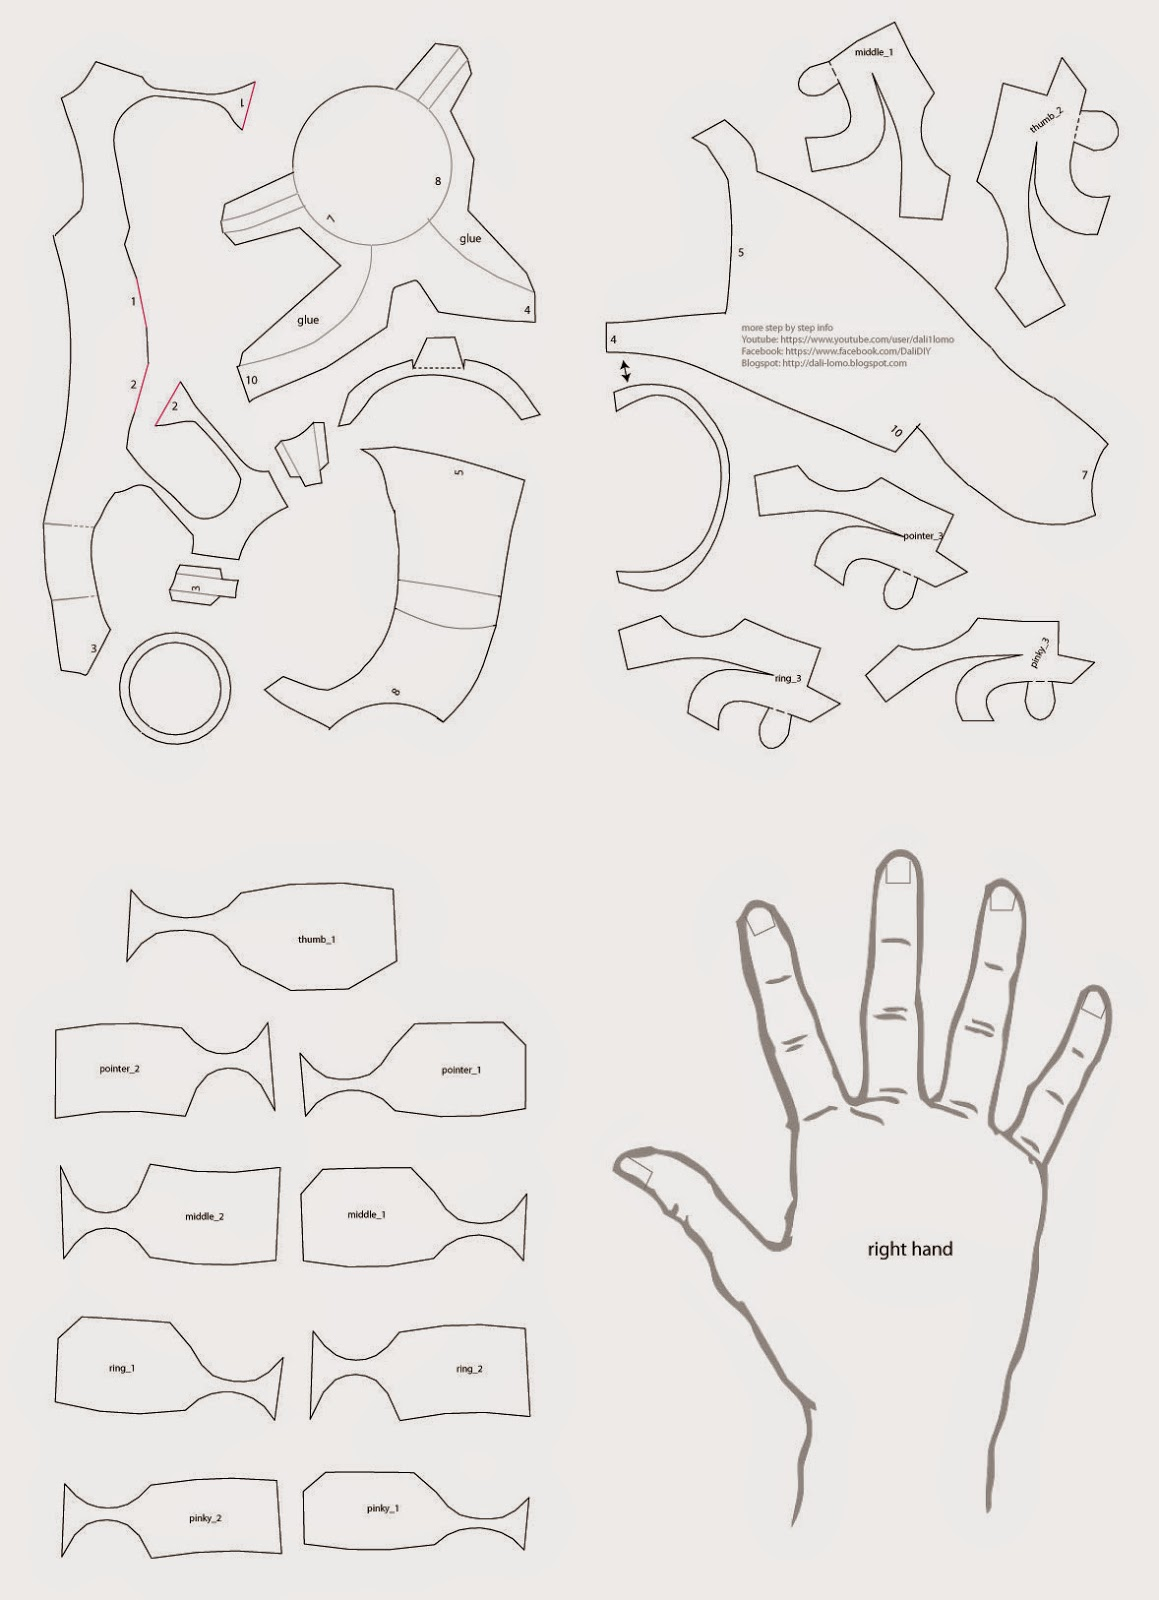 Dali lomo iron man hand diy with cereal box free pdf for Iron man suit template